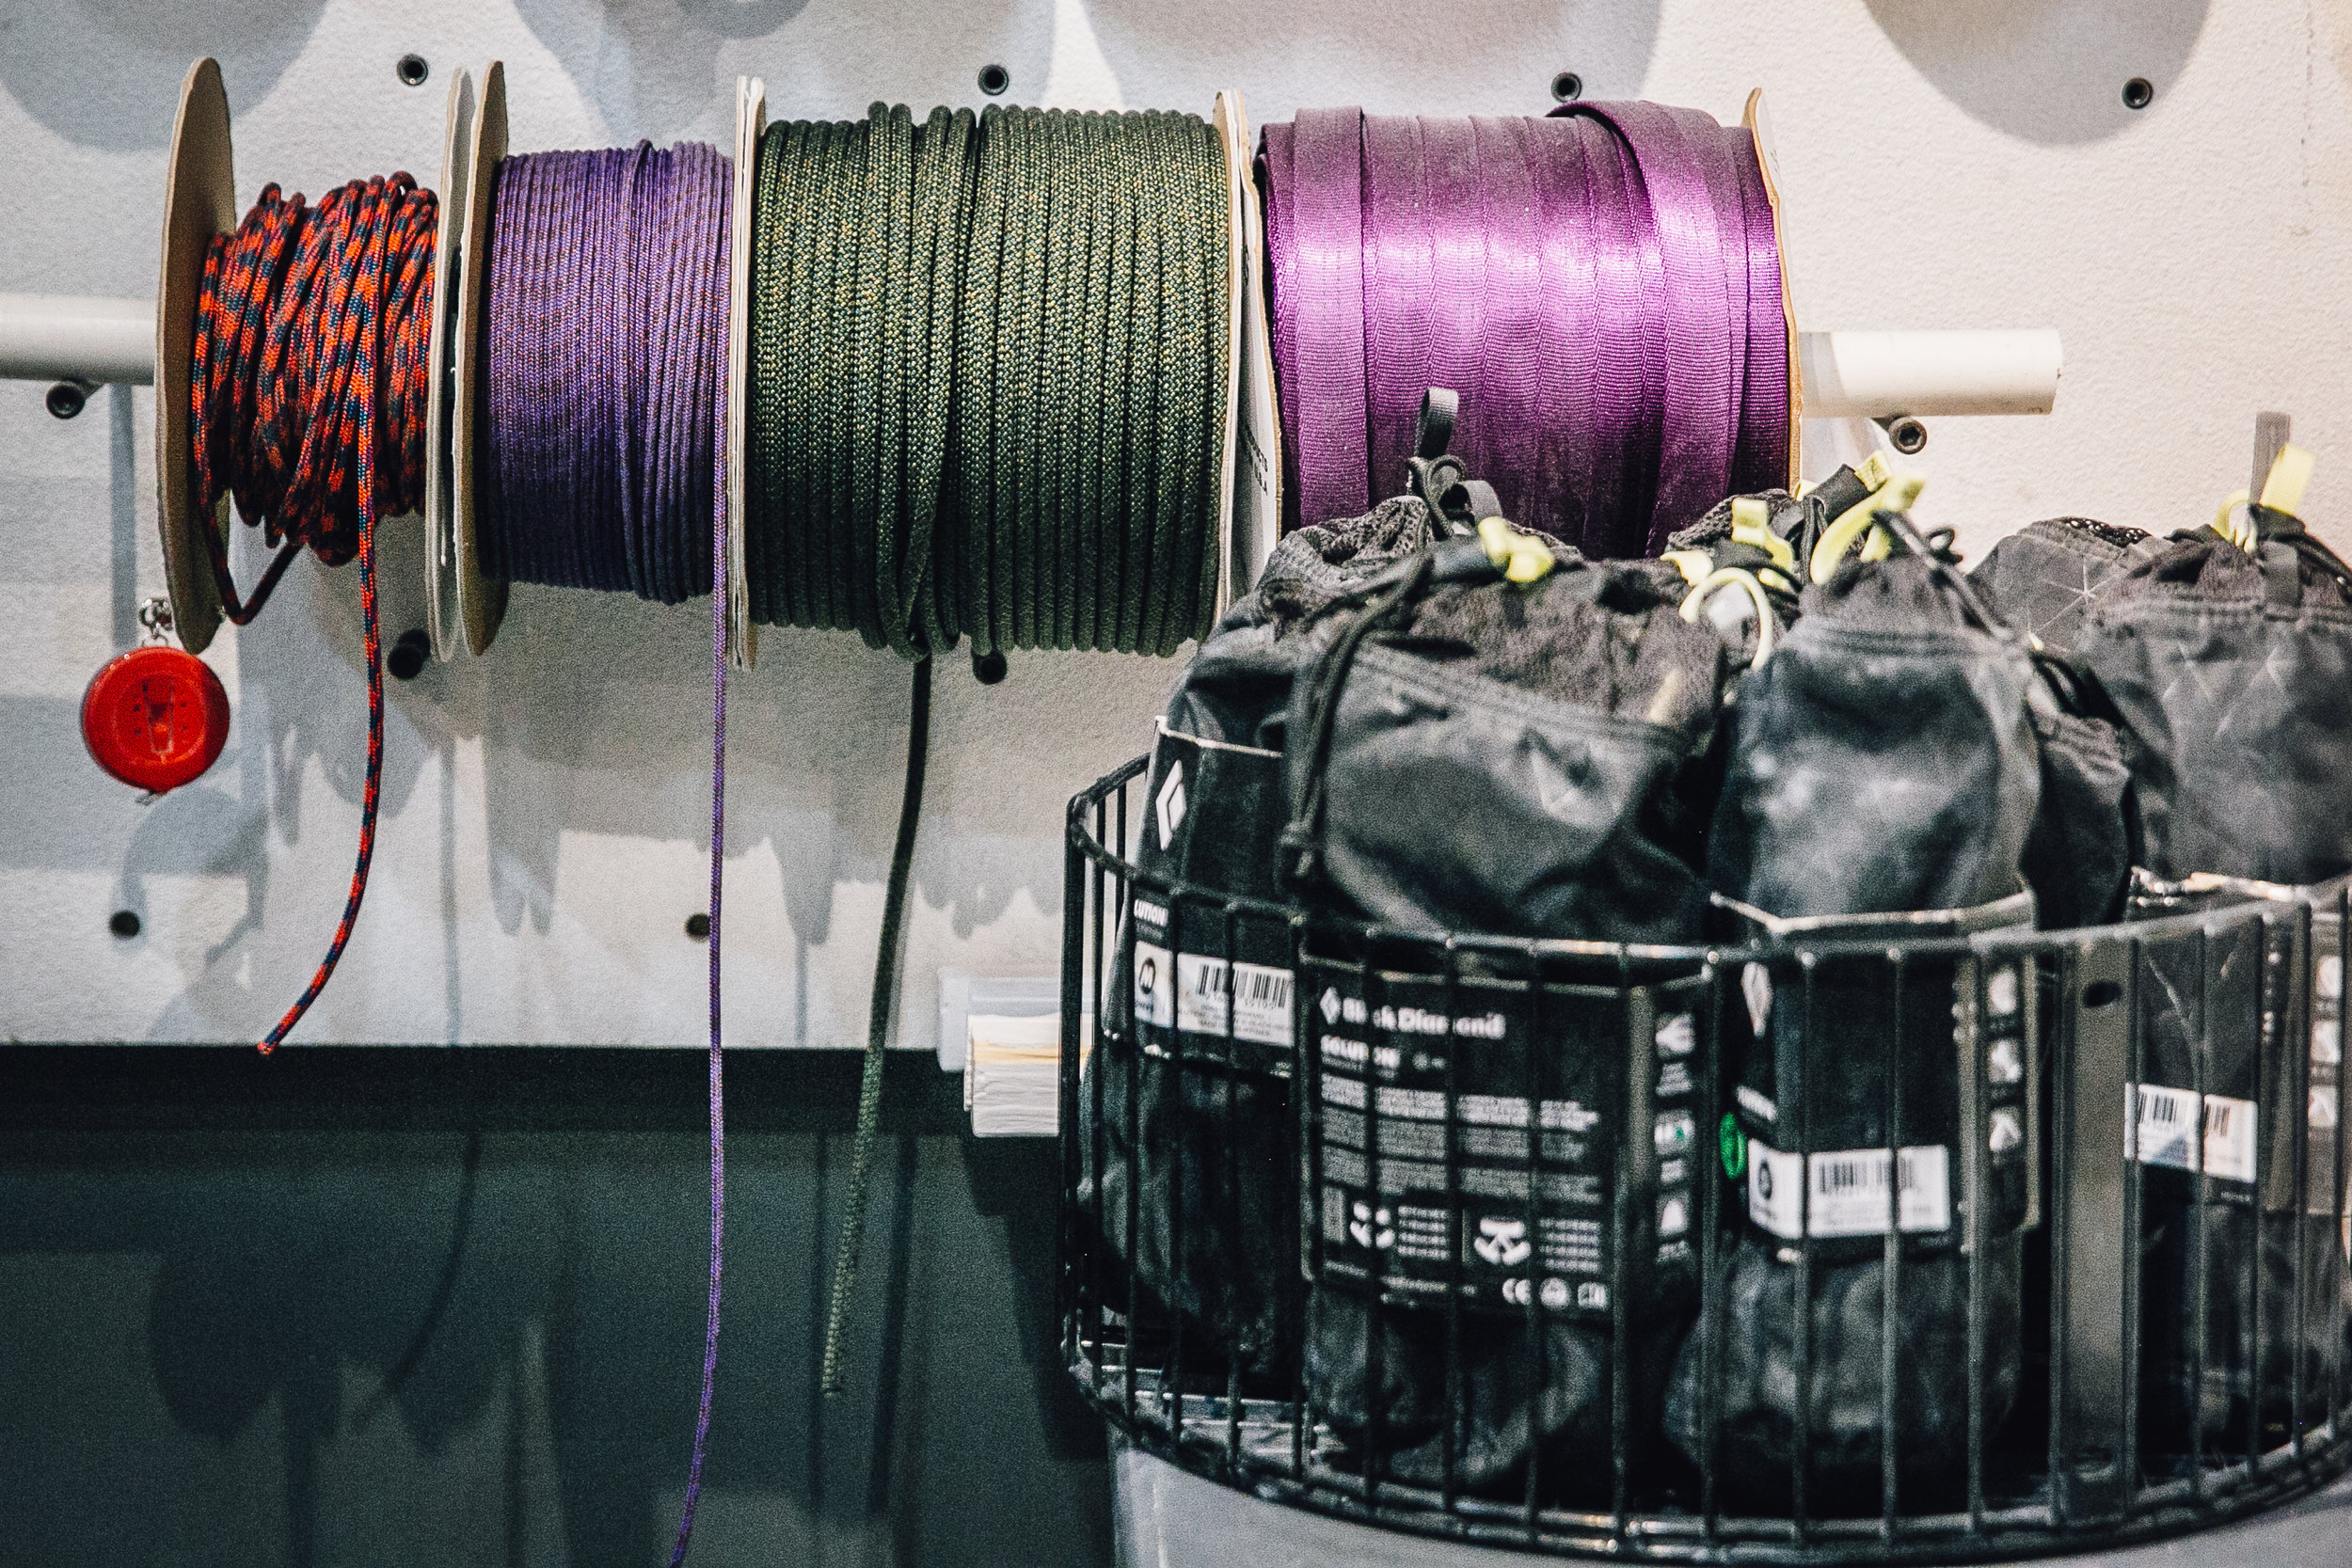 Ropes - Fresh cords to keep you off the ground.